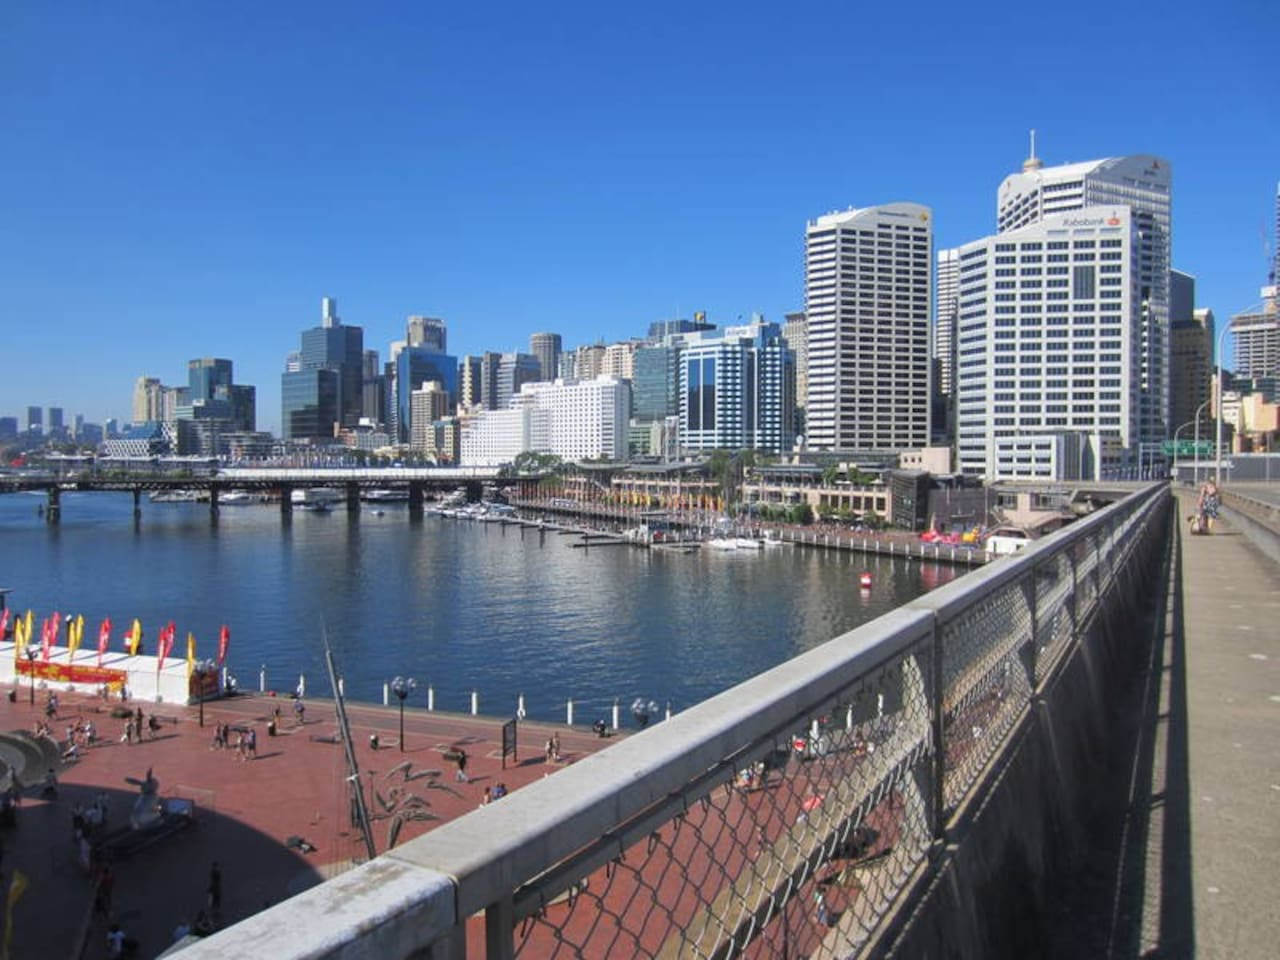 The 12-minute walk from the apartment to the city